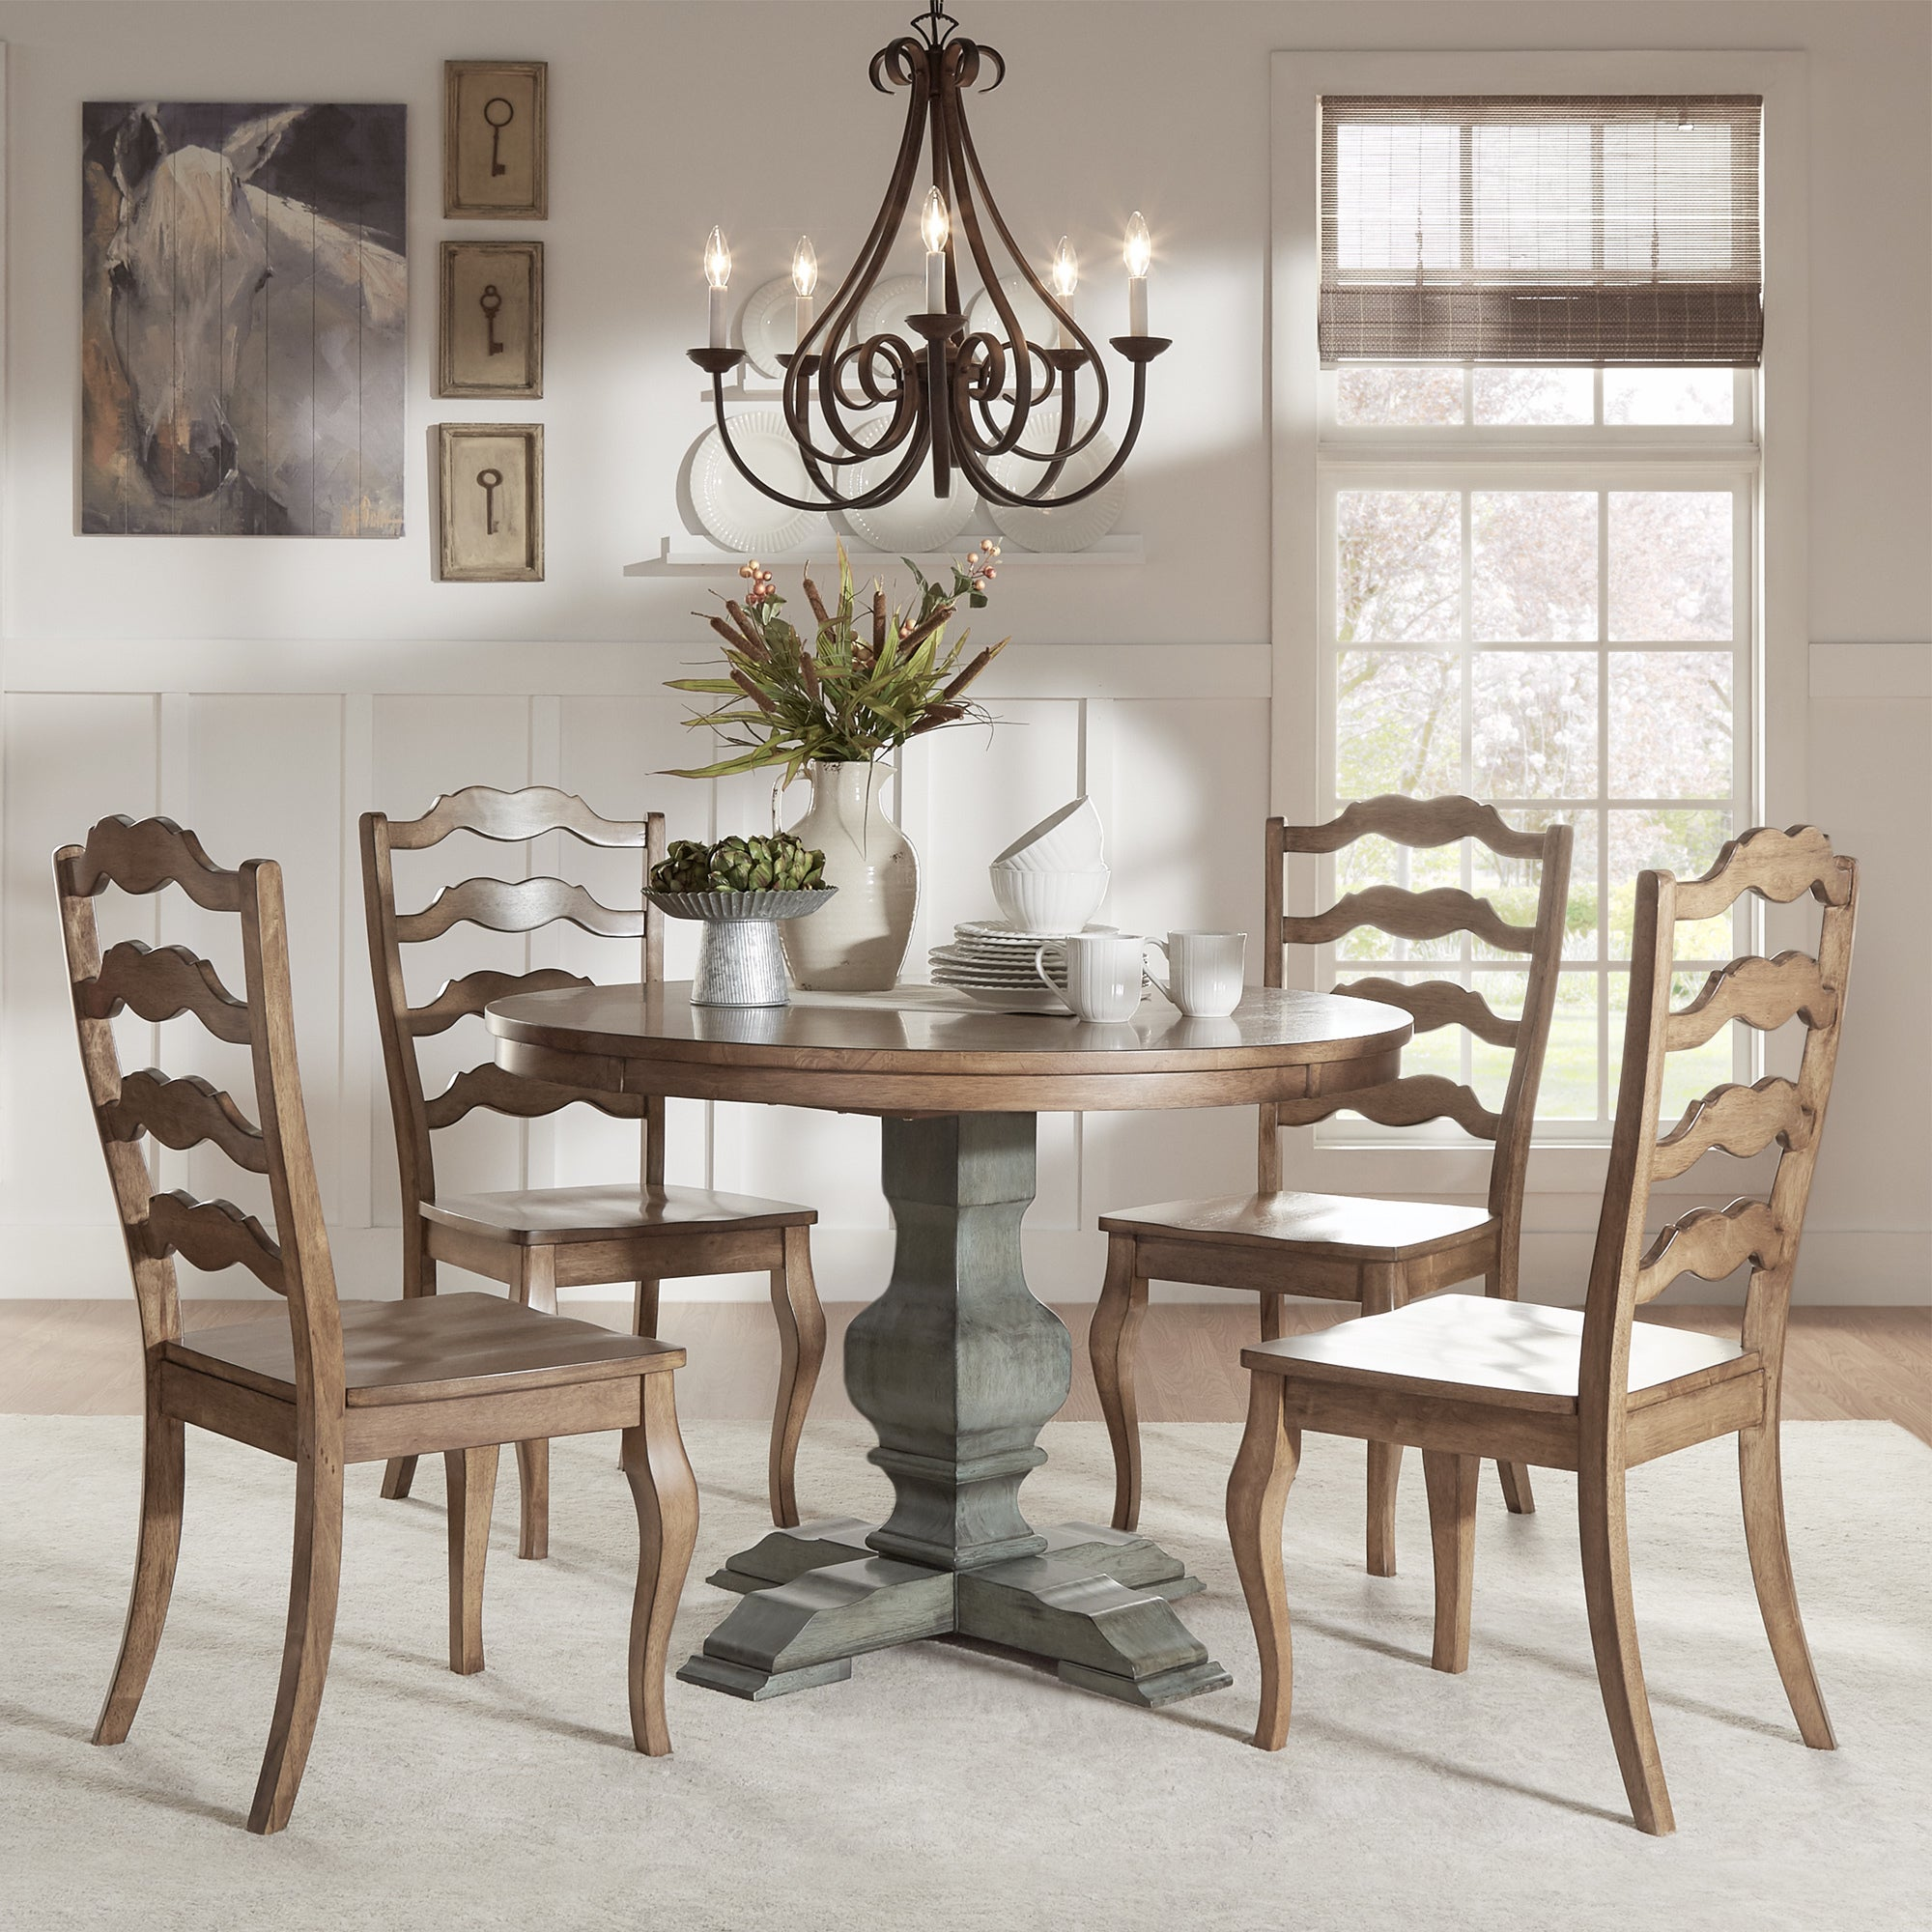 Eleanor Sage Green Round Solid Wood Top Ladder Back 5-piece Dining Set by  iNSPIRE Q Classic